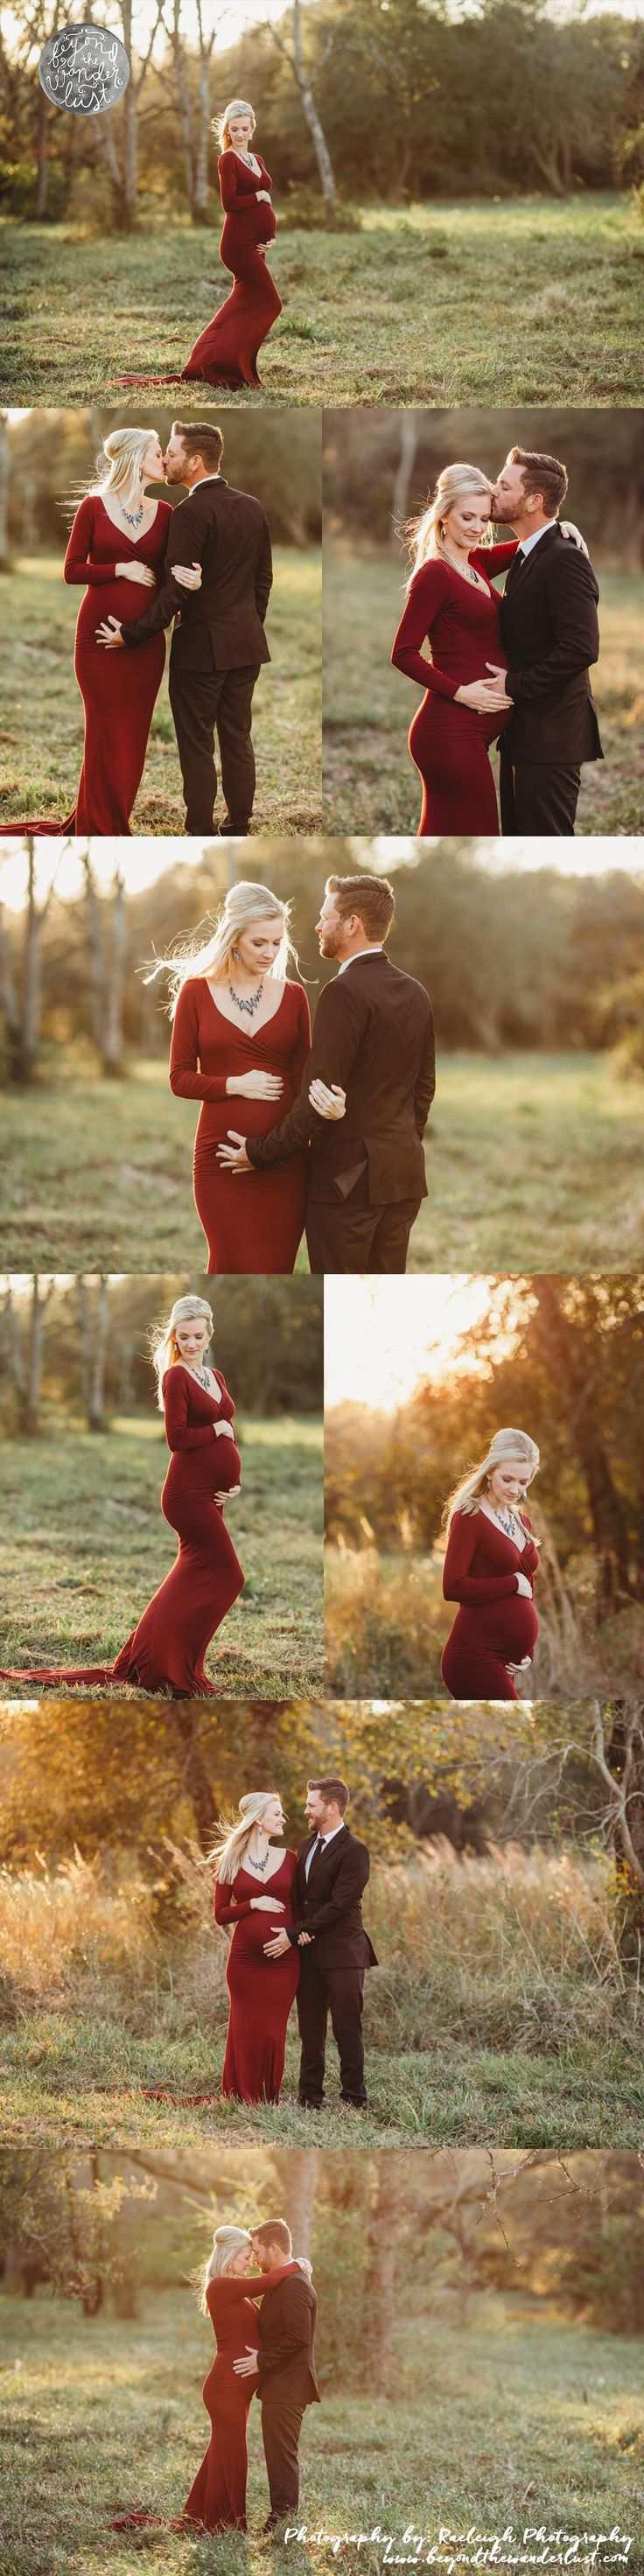 Maternity photography >> maternity poses #PregnancyPhotography #PregnancyPhotos